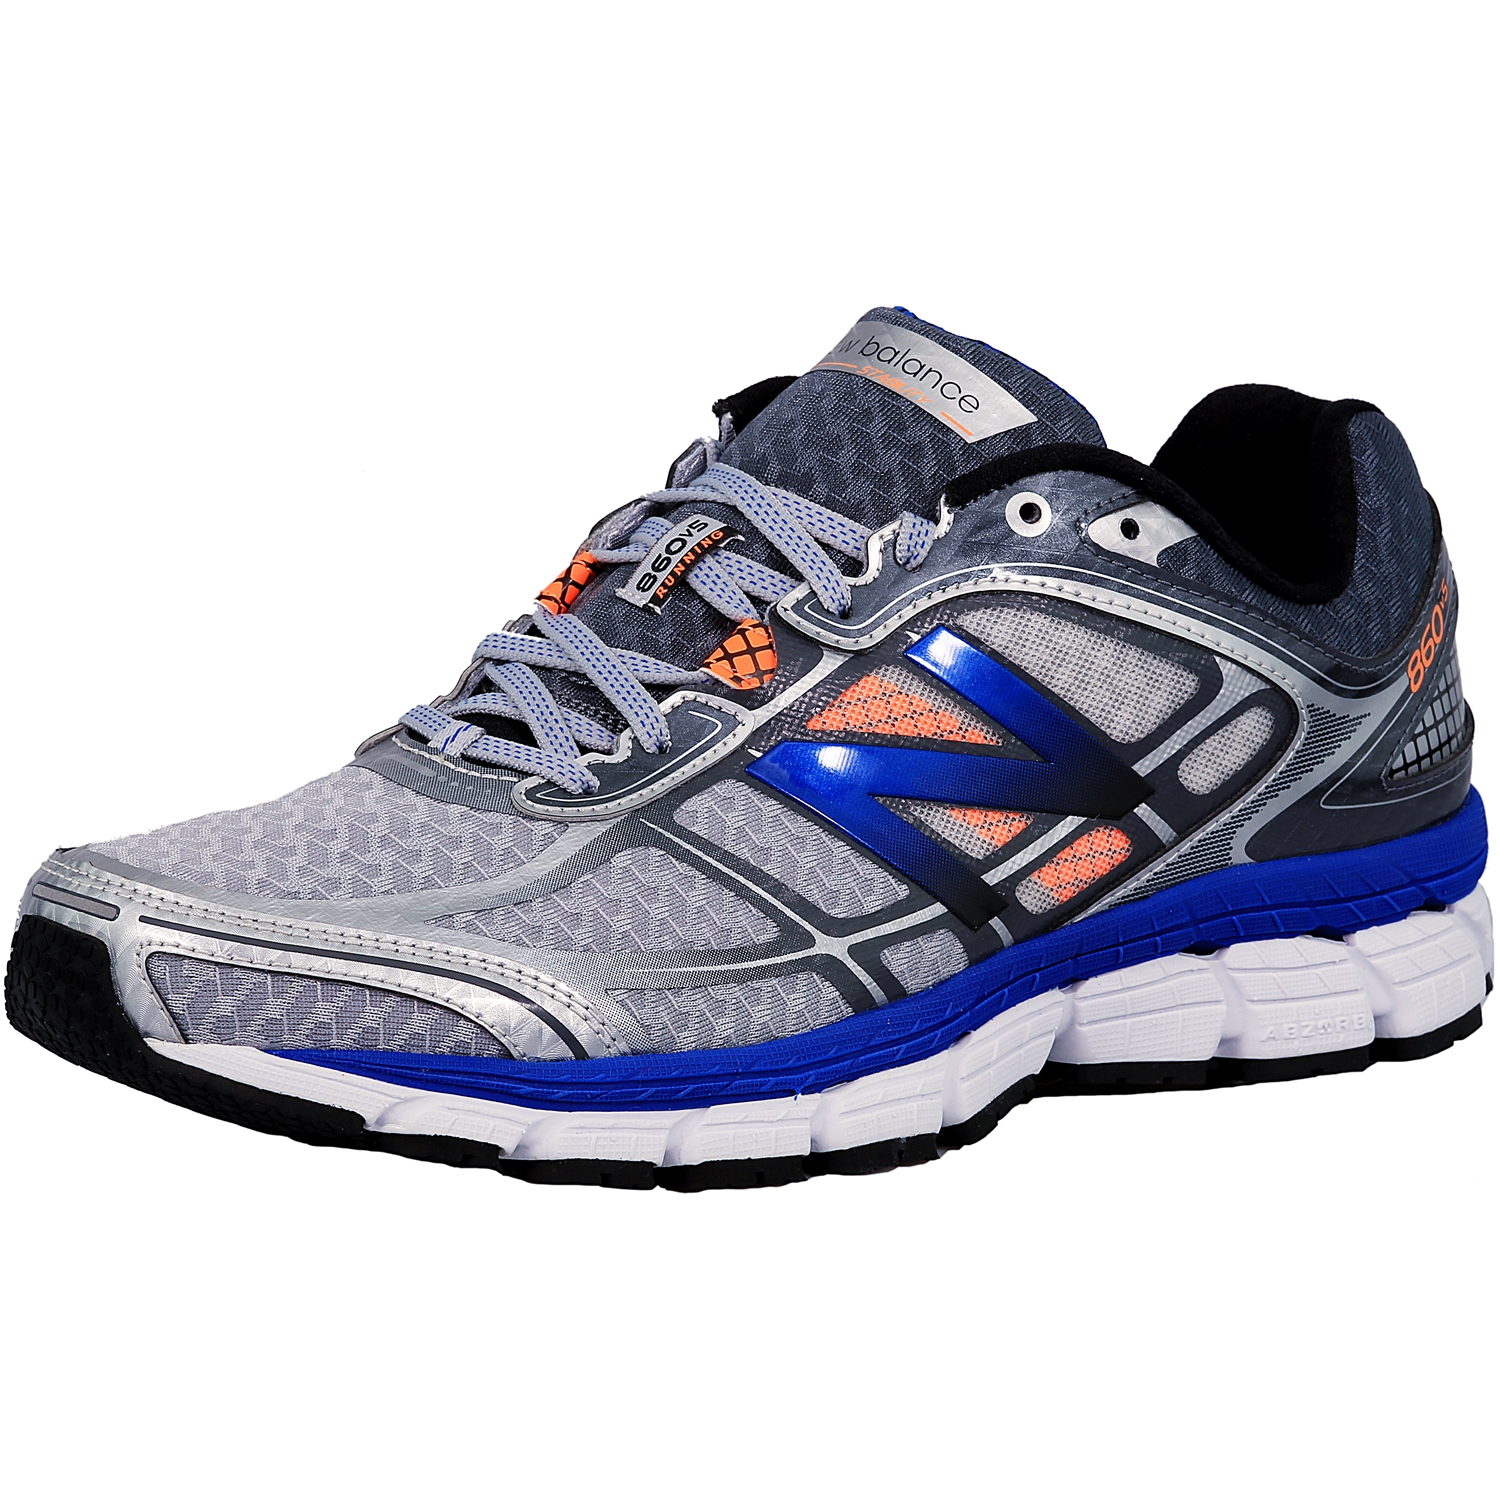 New Balance Men's M860 Sb5 Ankle-High Running Shoe - 12.5M